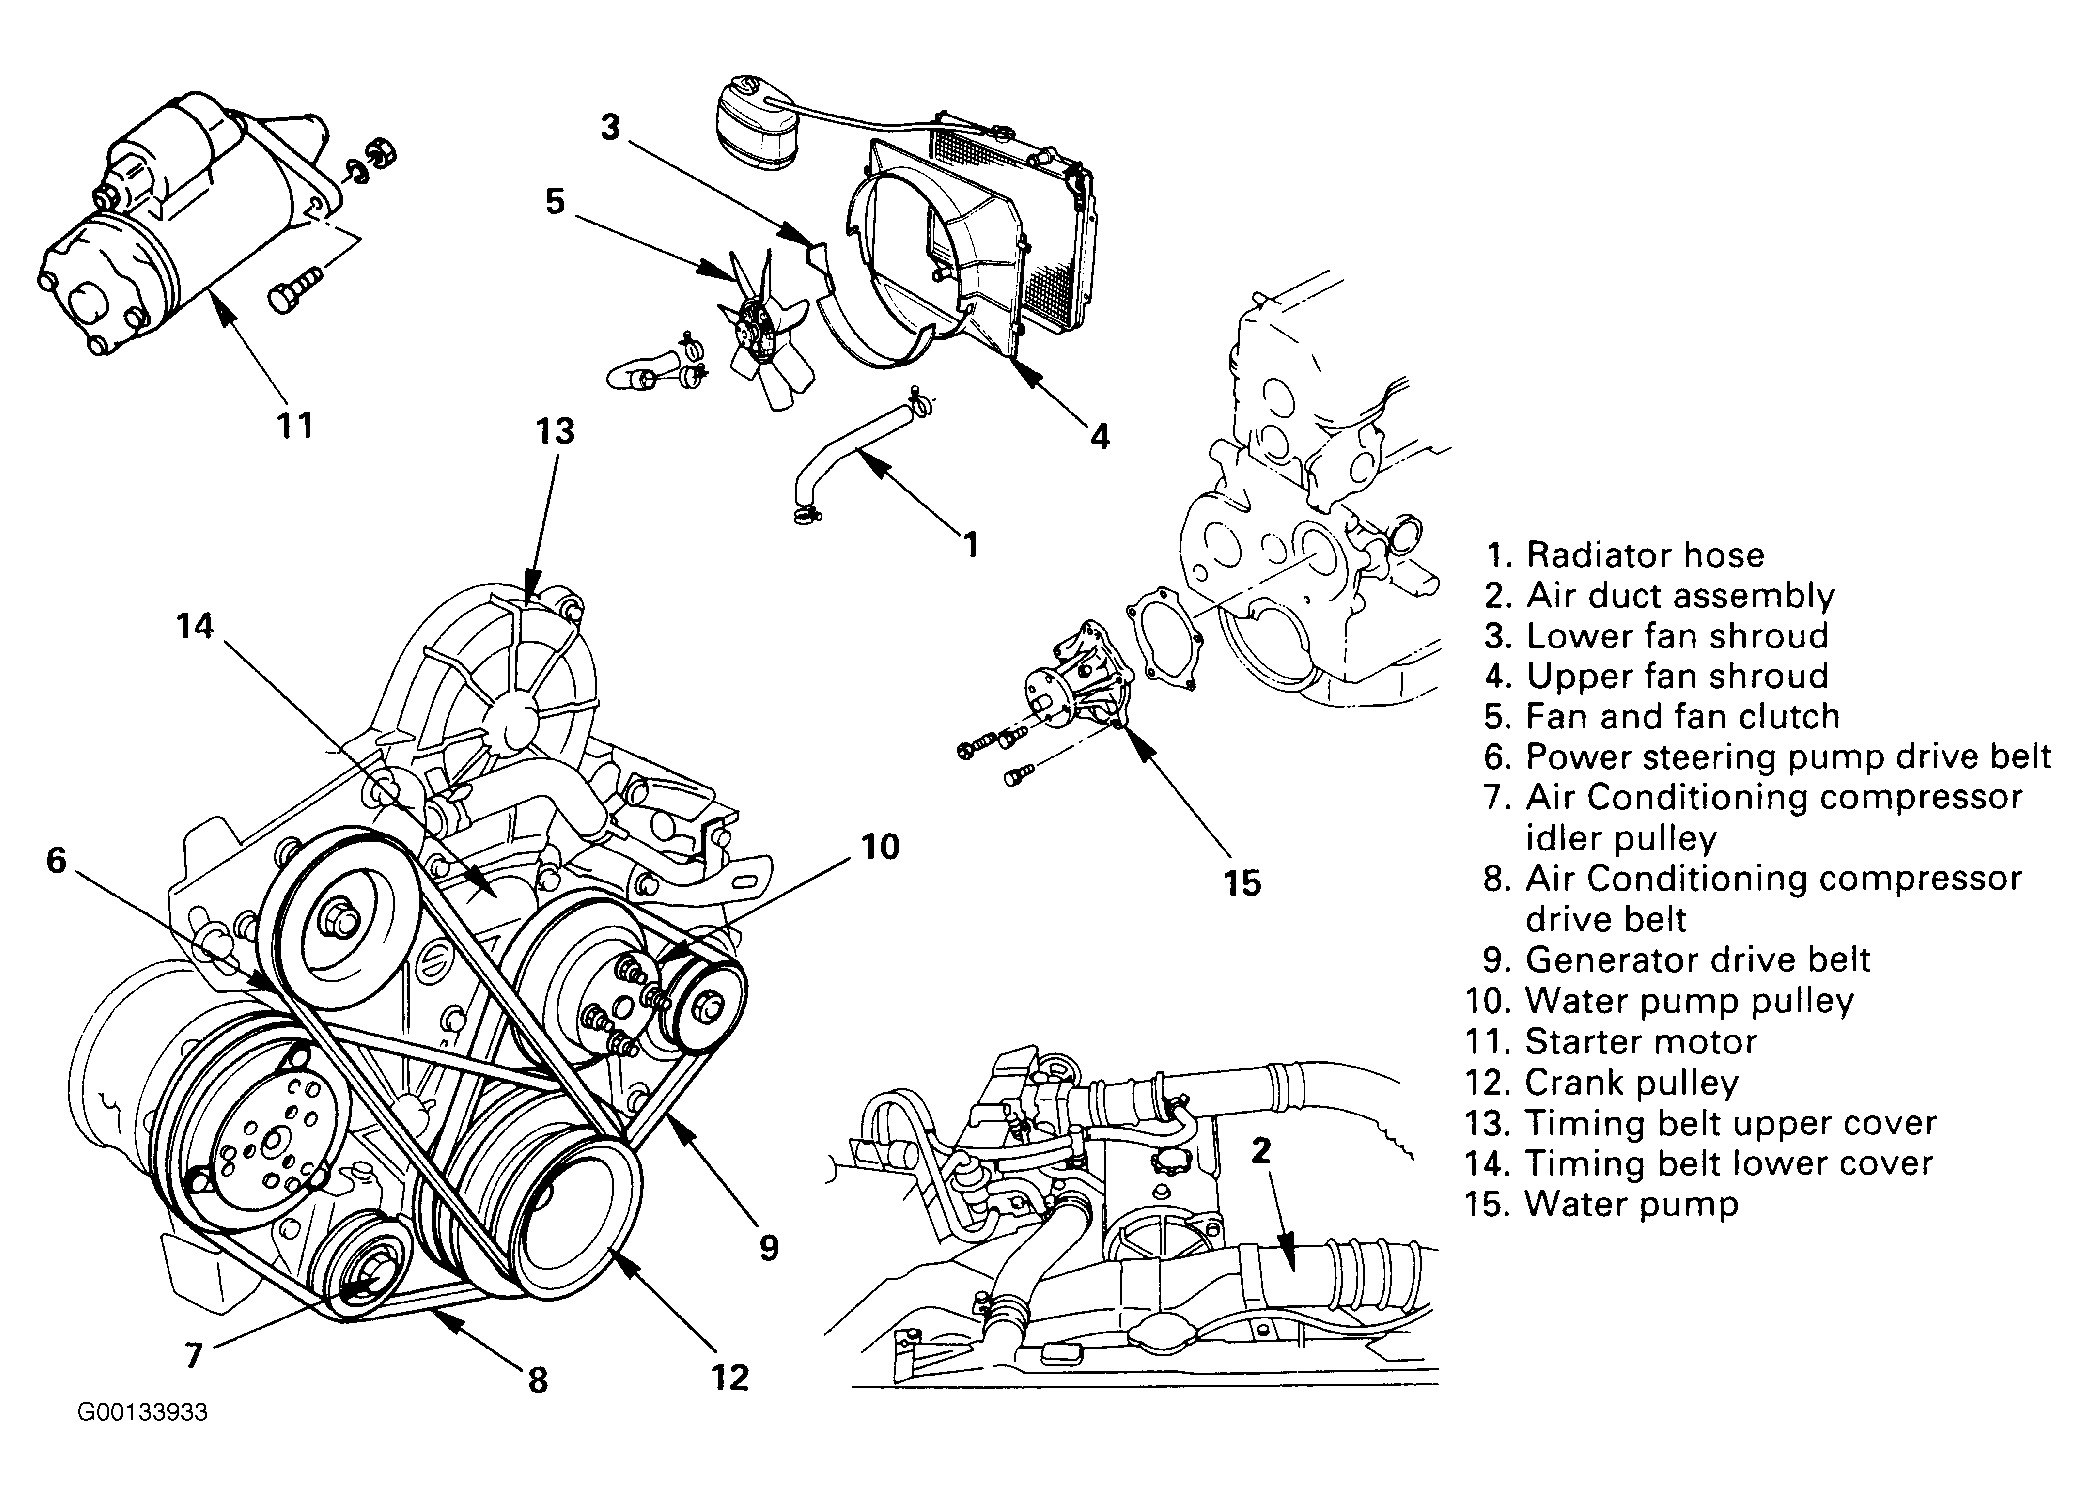 Diagram 2000 Isuzu Rodeo Engine Diagram Full Version Hd Quality Engine Diagram Blogwiring2f Atuttasosta It